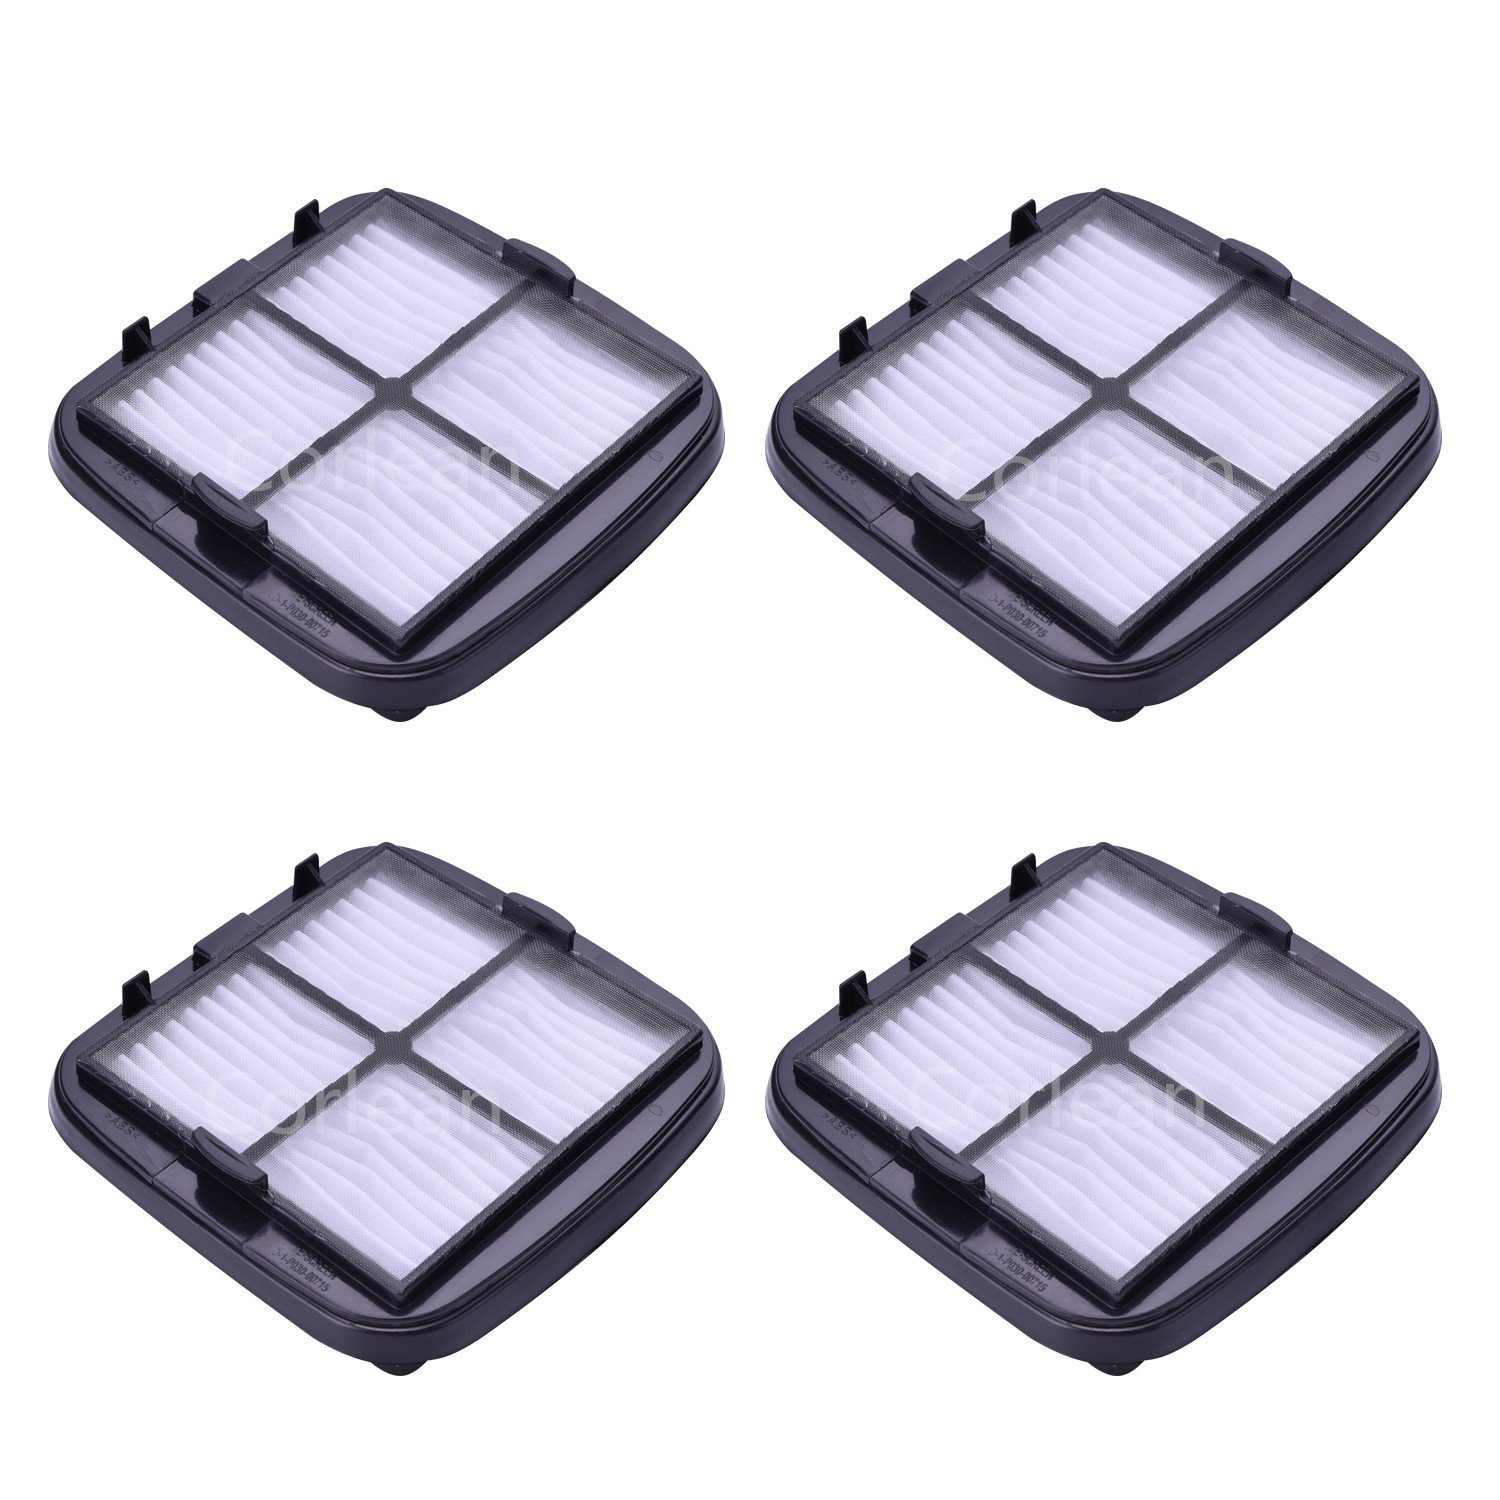 Corlean 4 Pack Compatible Filters Replacement for Bissell Pet & Hand Vac Multi-Level Filter,97D5, Replaces Part # 203-7416